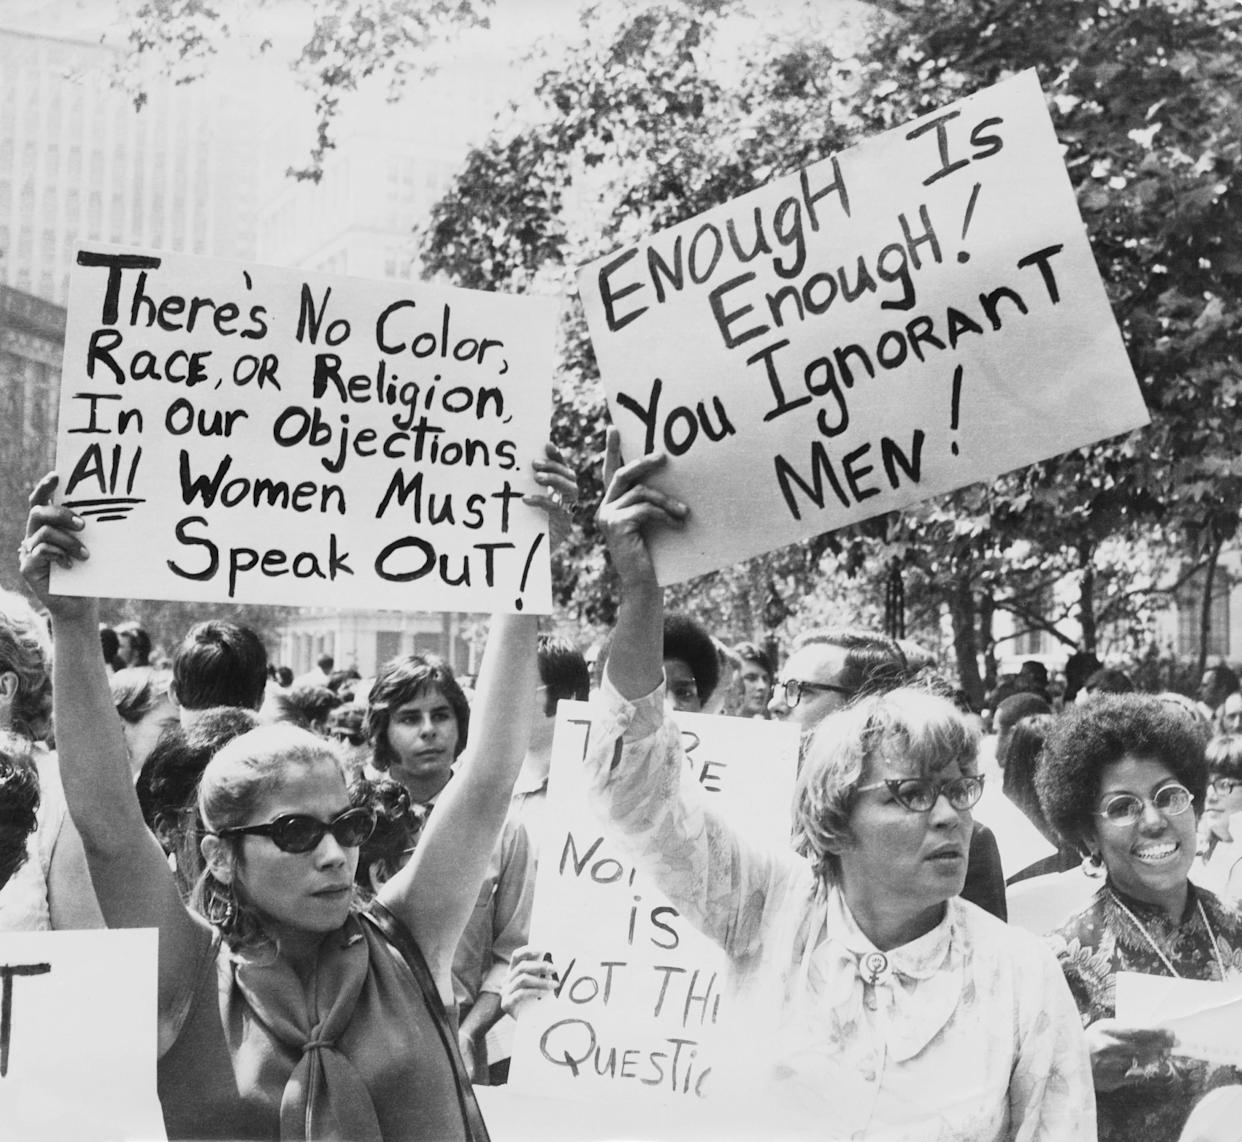 Women hold up signs demanding equal rights during a demonstration for women's liberation, New York City, circa 1968.